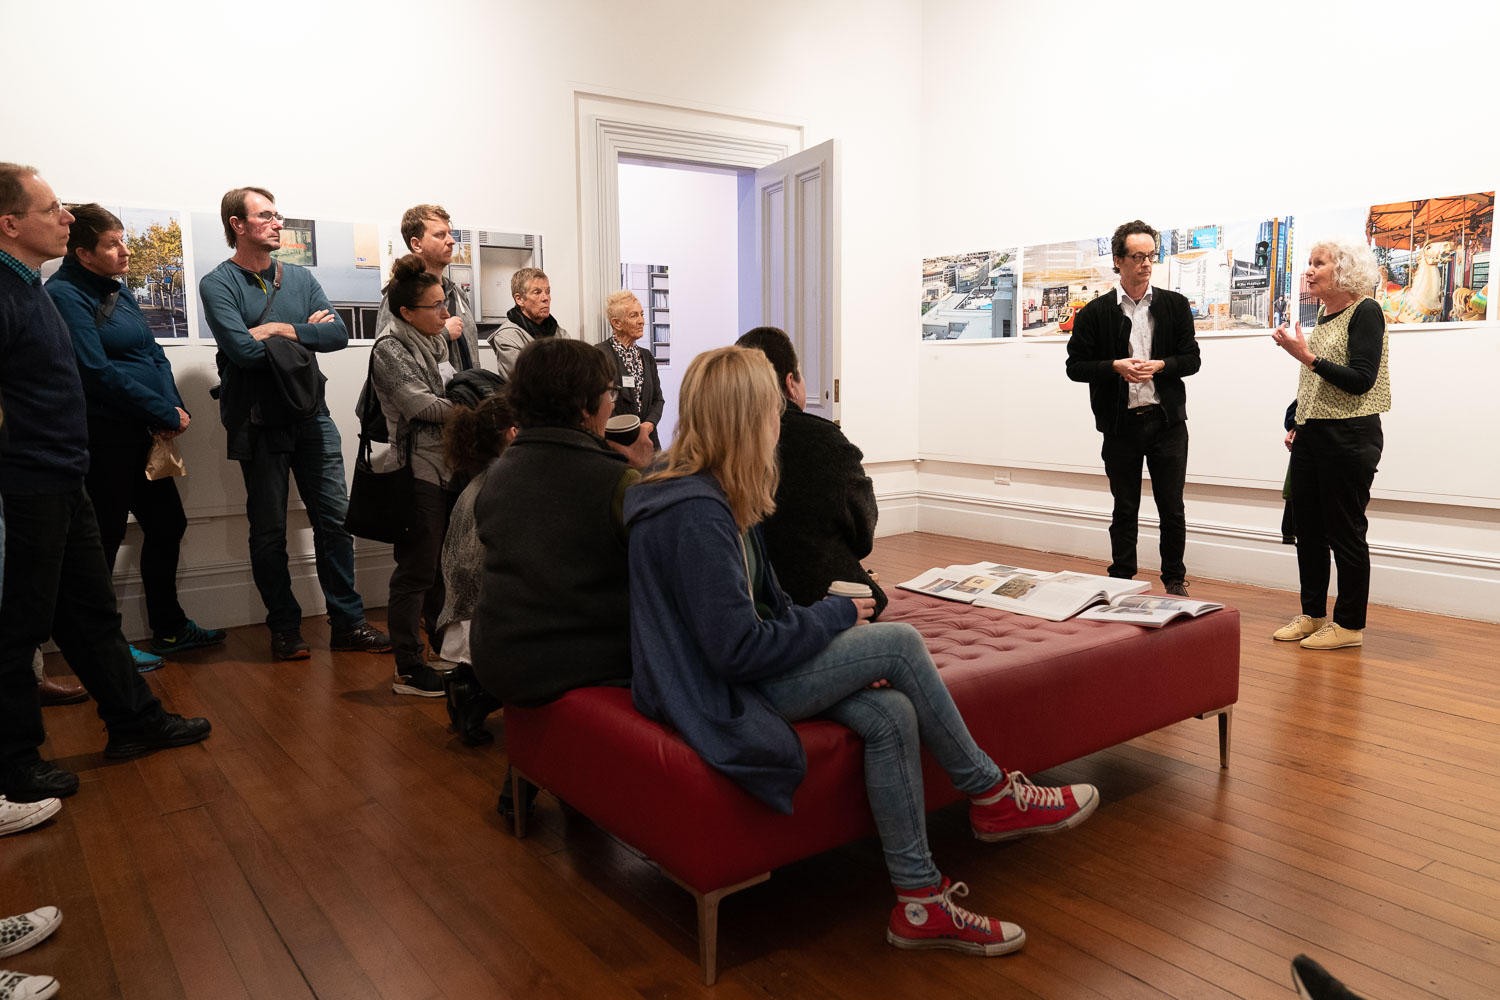 Mary Macpherson and Nicholas Butler in conversation at the exhibition 'The Long View' at Pah Homestead, 10 June 2018. Photo by Geoff Short